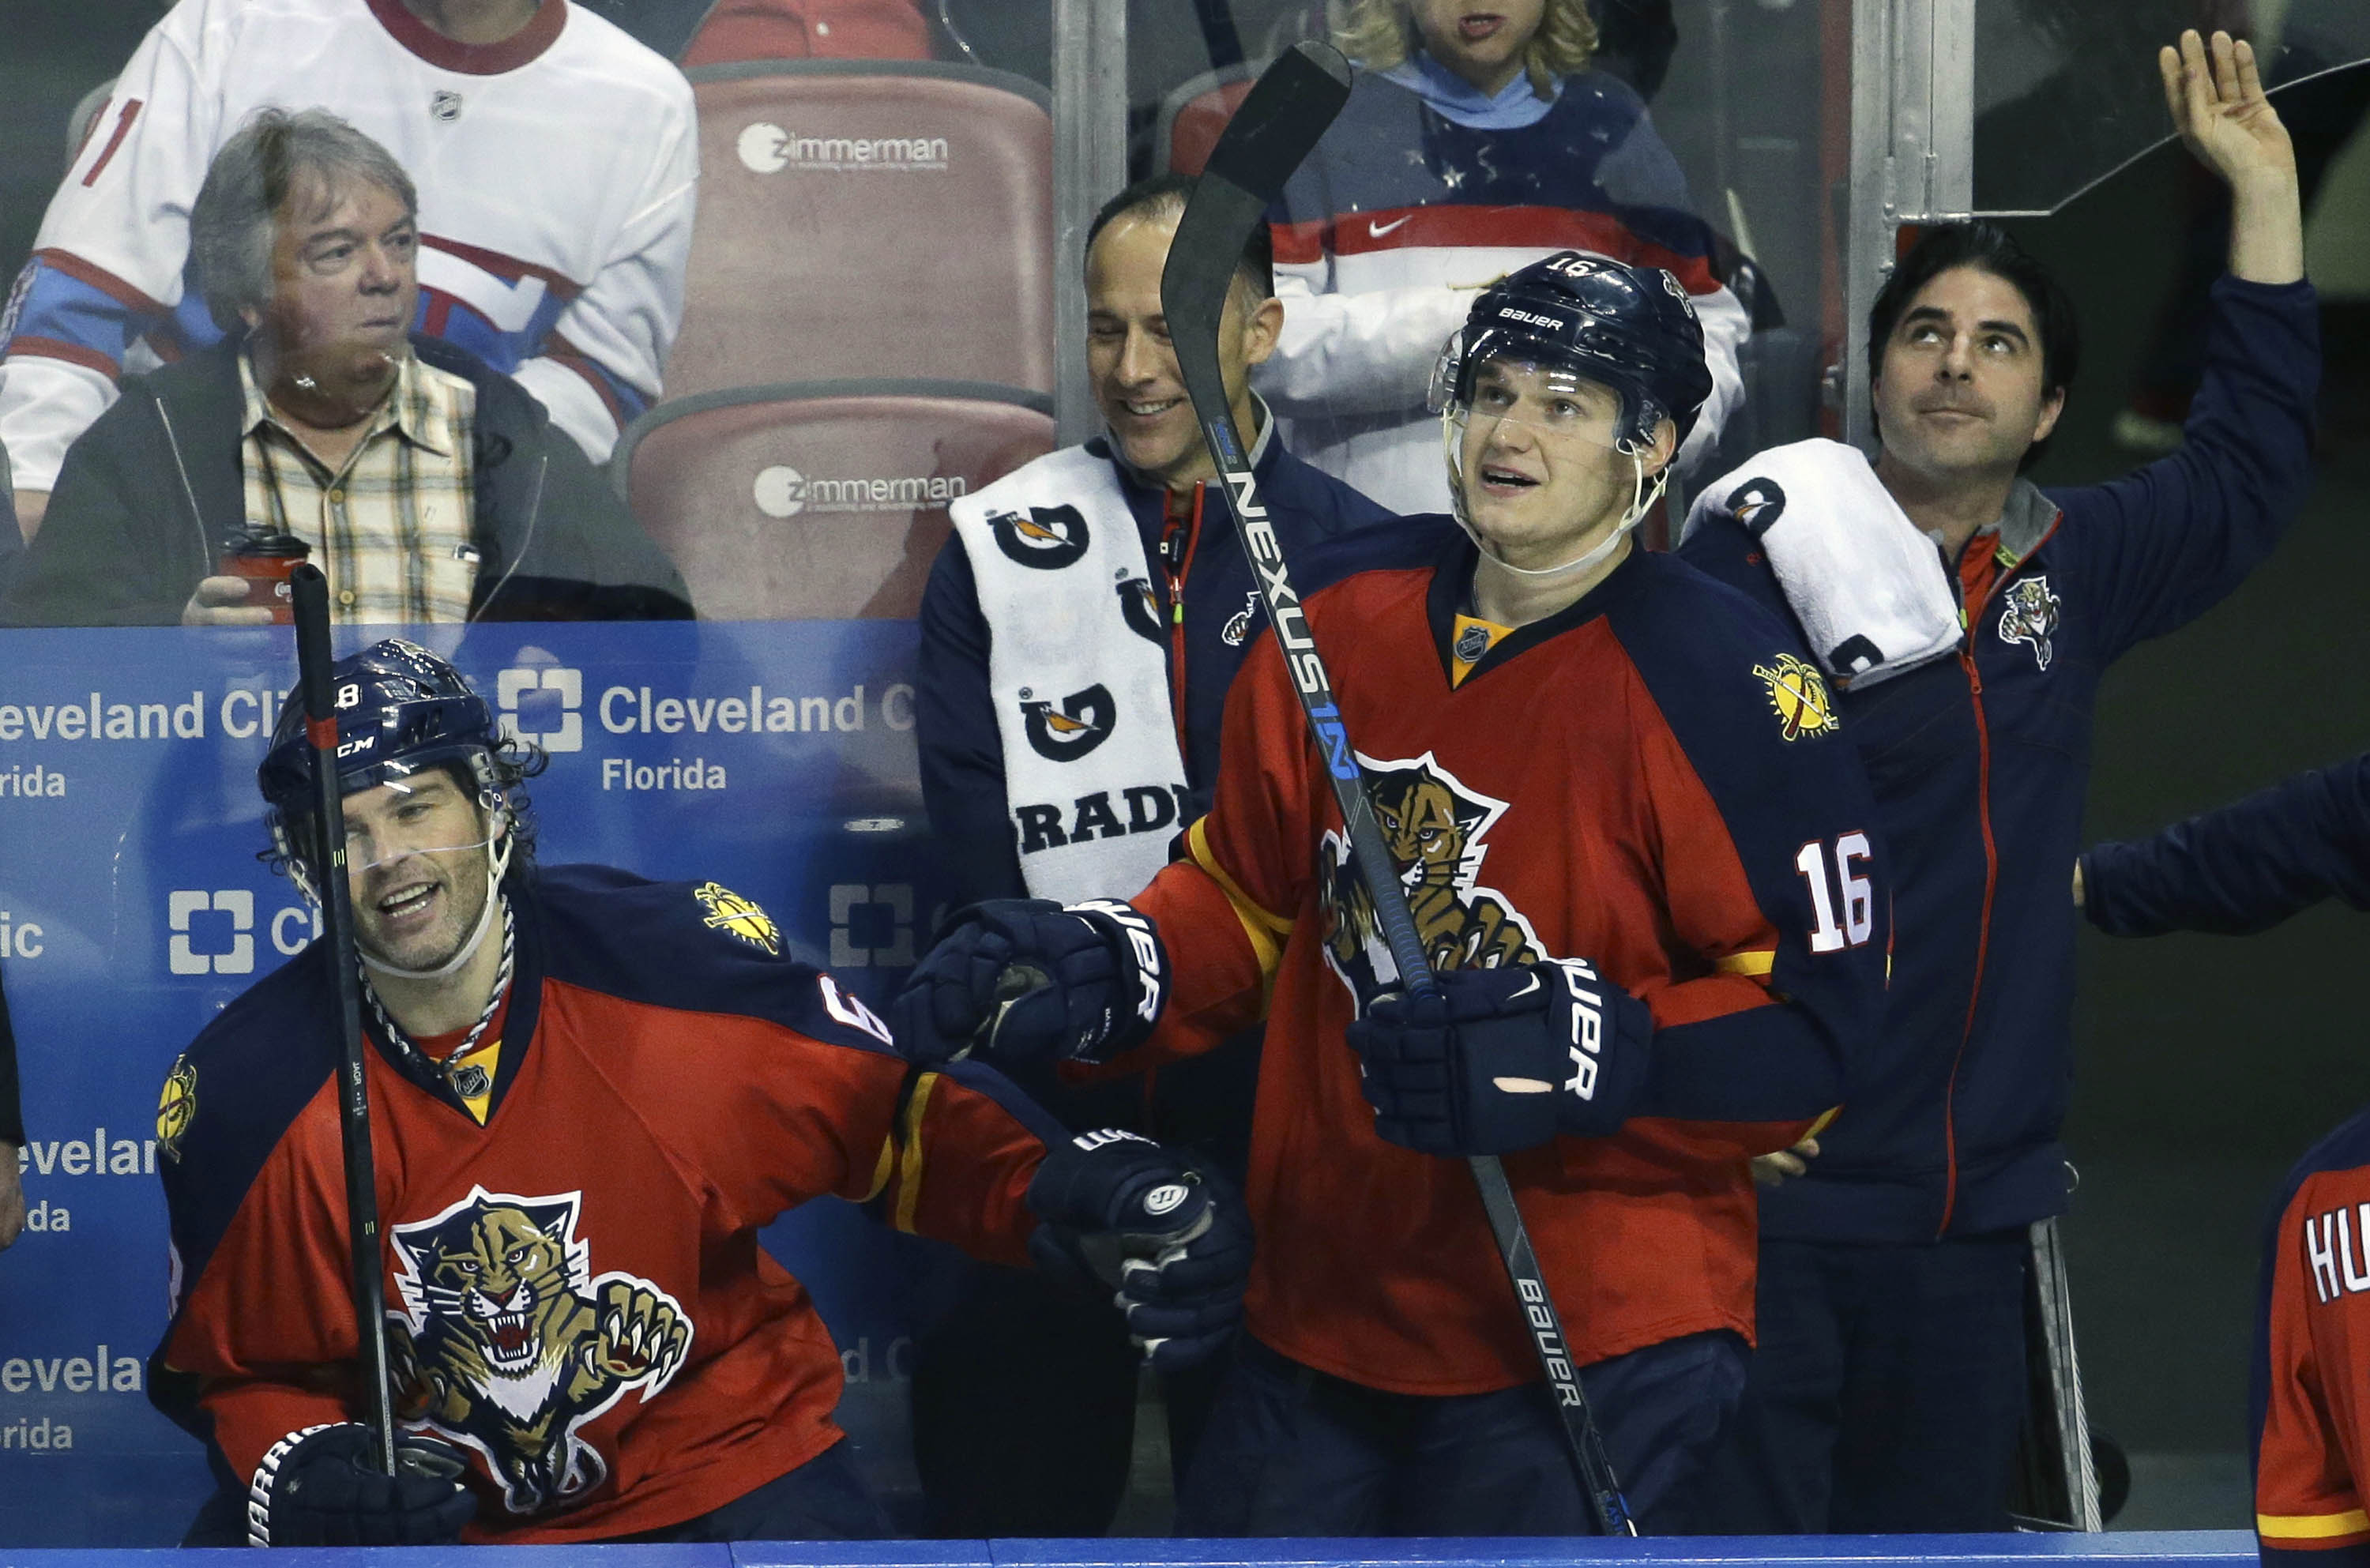 Florida Panthers right wing Jaromir Jagr, left, is congratulated by center Aleksander Barkov (16) after scoring a goal during the second period of an NHL hockey game against the Montreal Canadiens, Tuesday, Dec. 29, 2015, in Sunrise, Fla. (AP Photo/Lynne